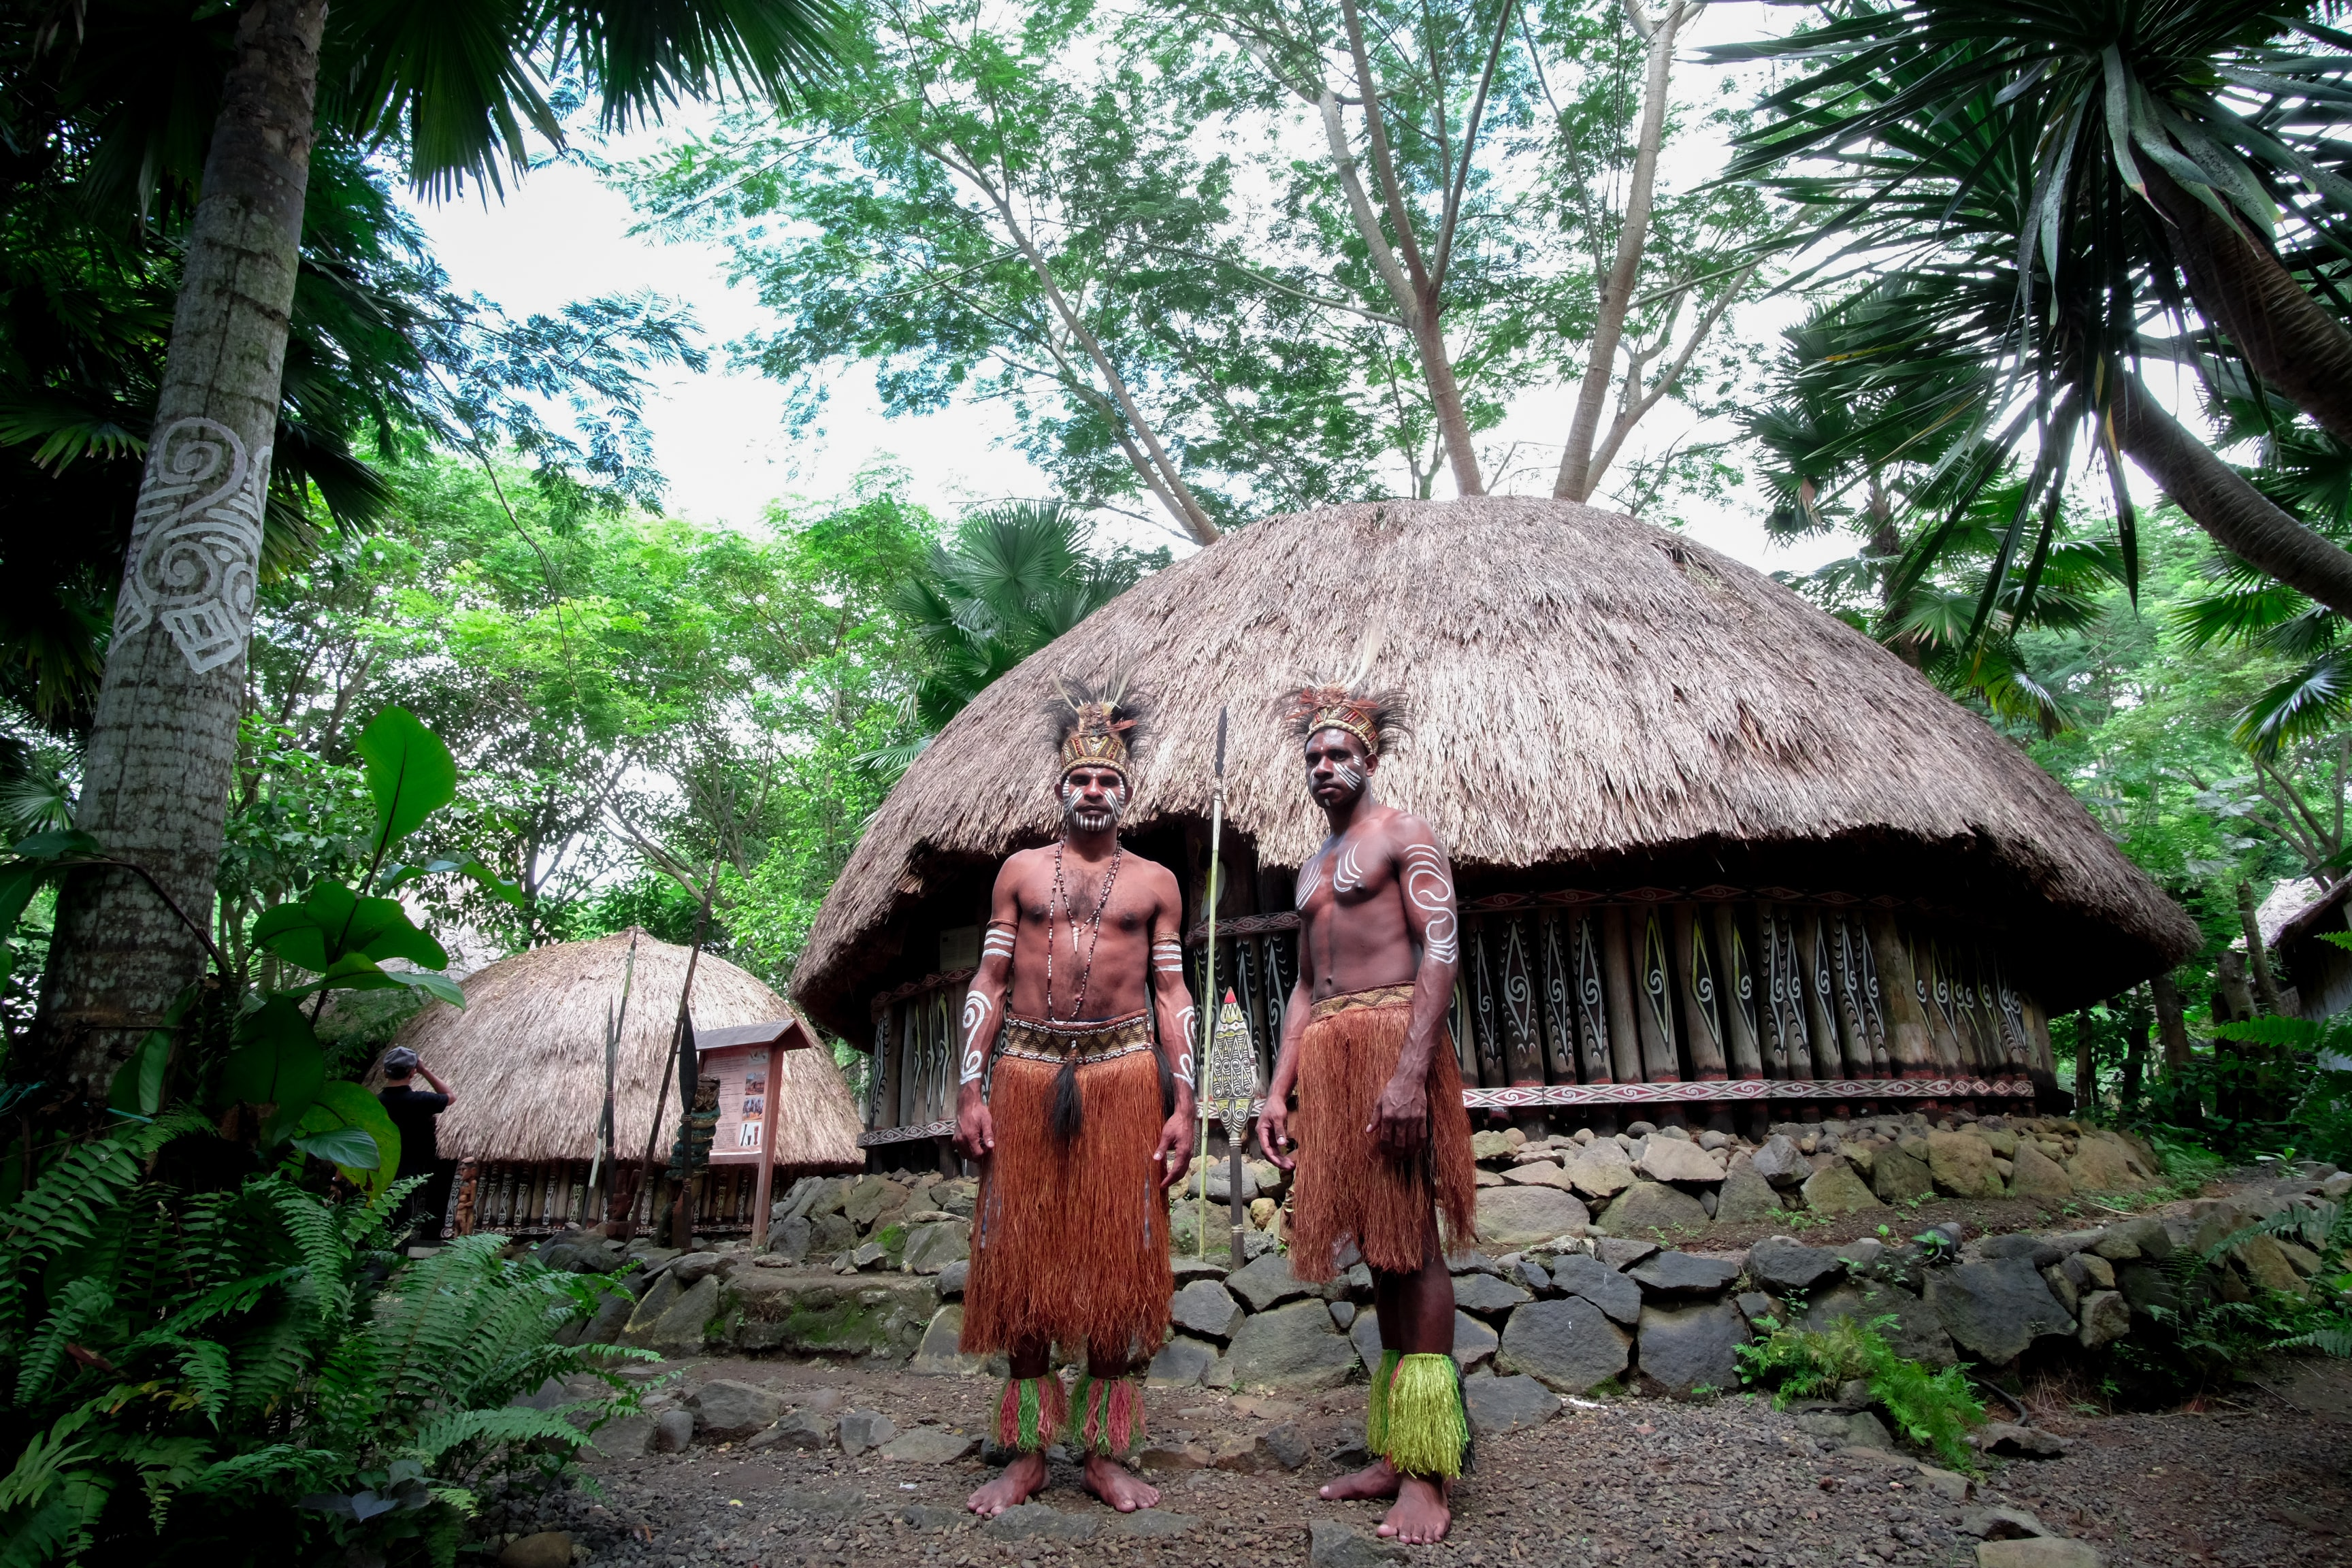 Two bare-chested men in tribal skirts and headgear near wooden huts in Bali